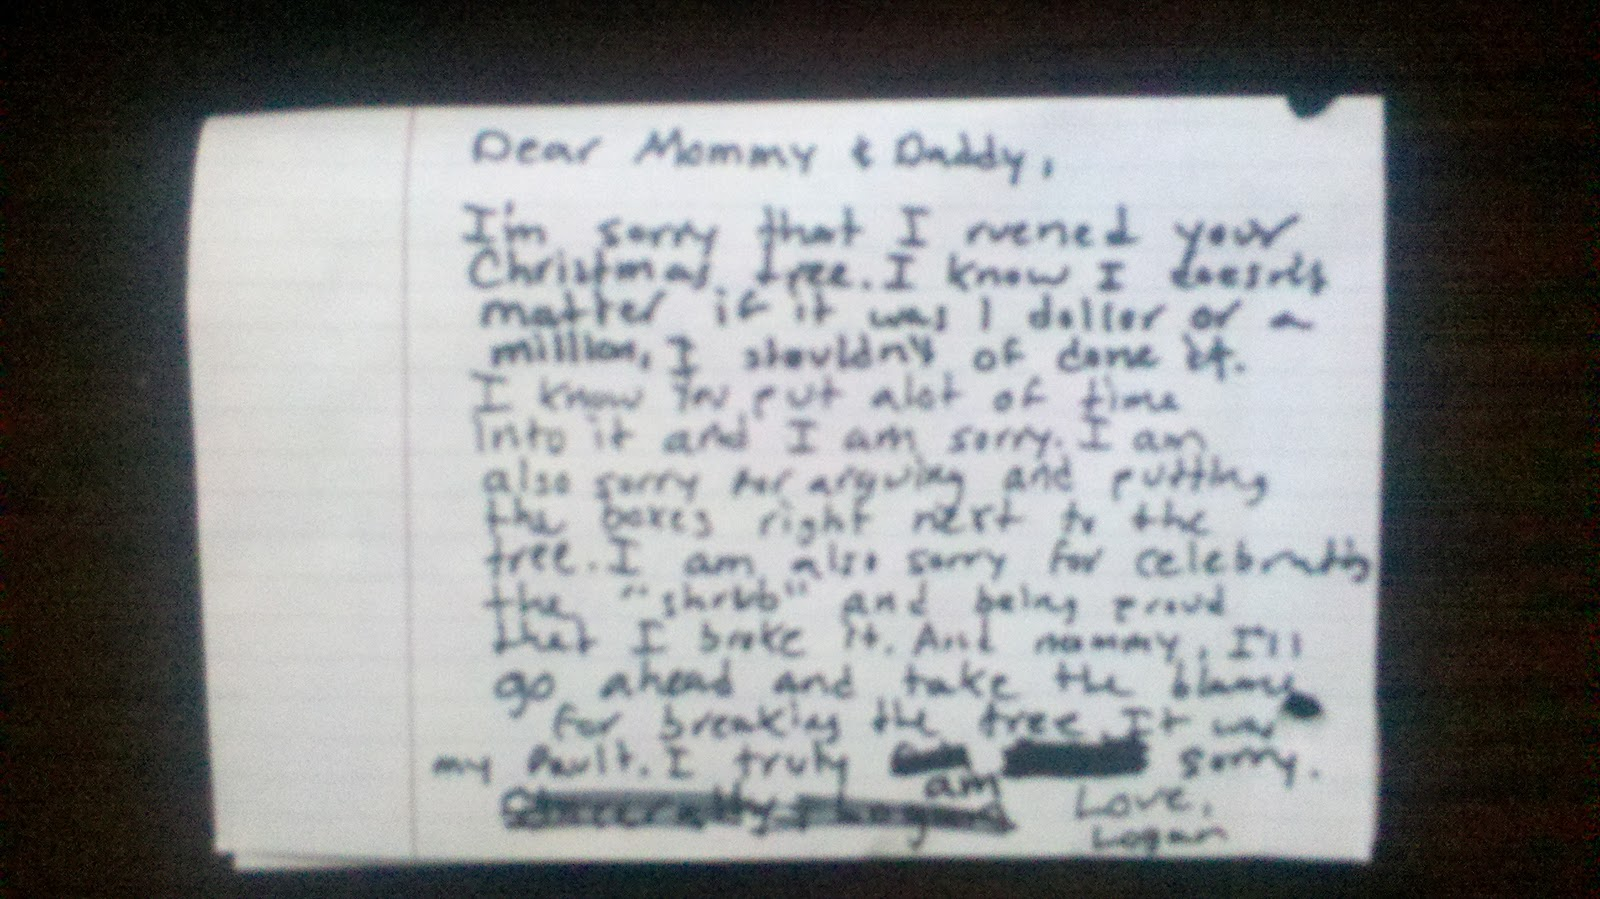 """Robert The Doll Moving Caught On Tape It says: """"dear mommy and daddy"""